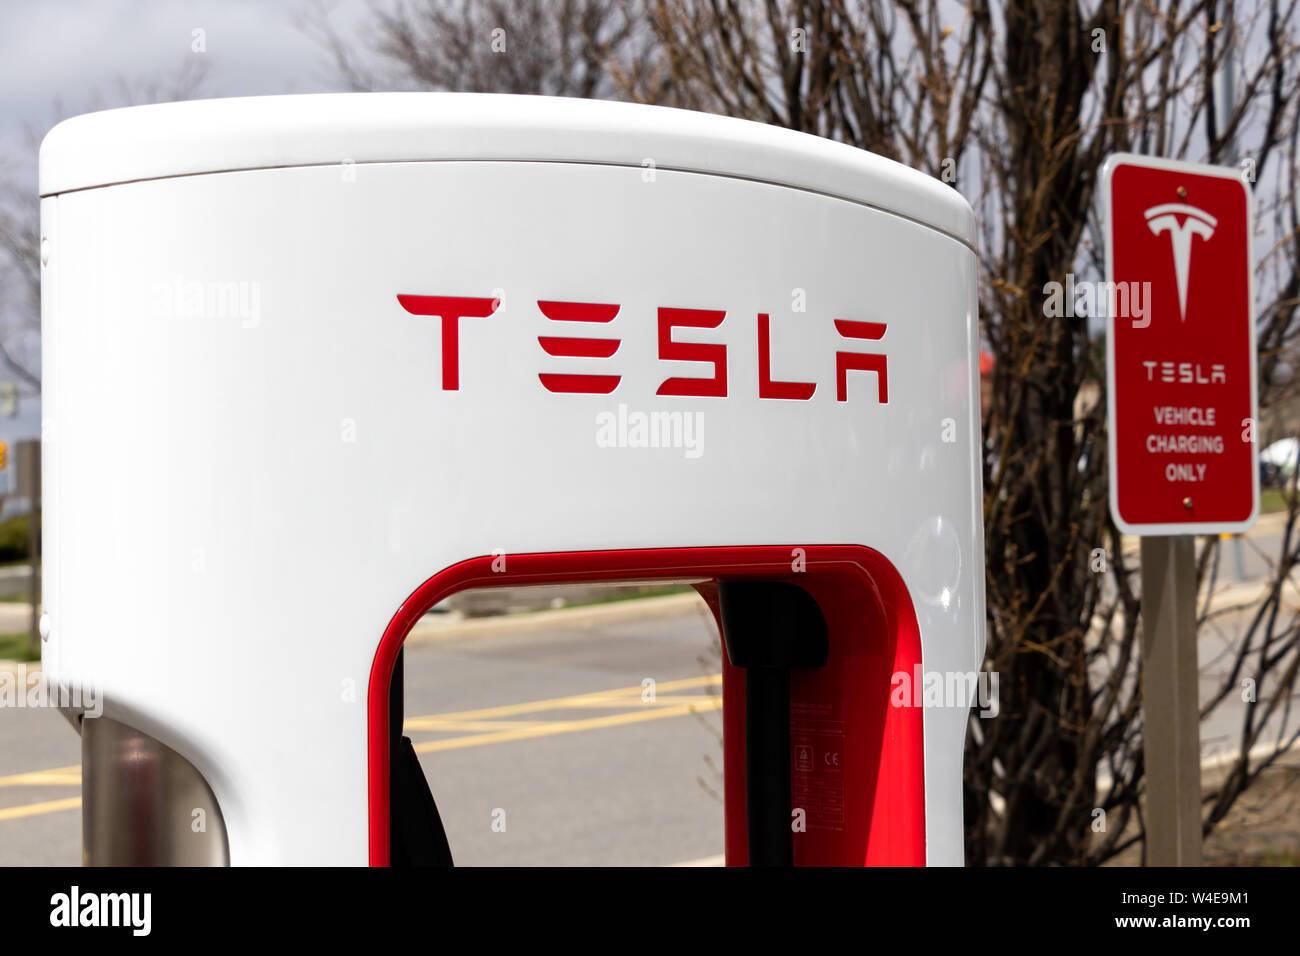 Tesla Supercharger and Tesla Vehicle Charging Only Sign at